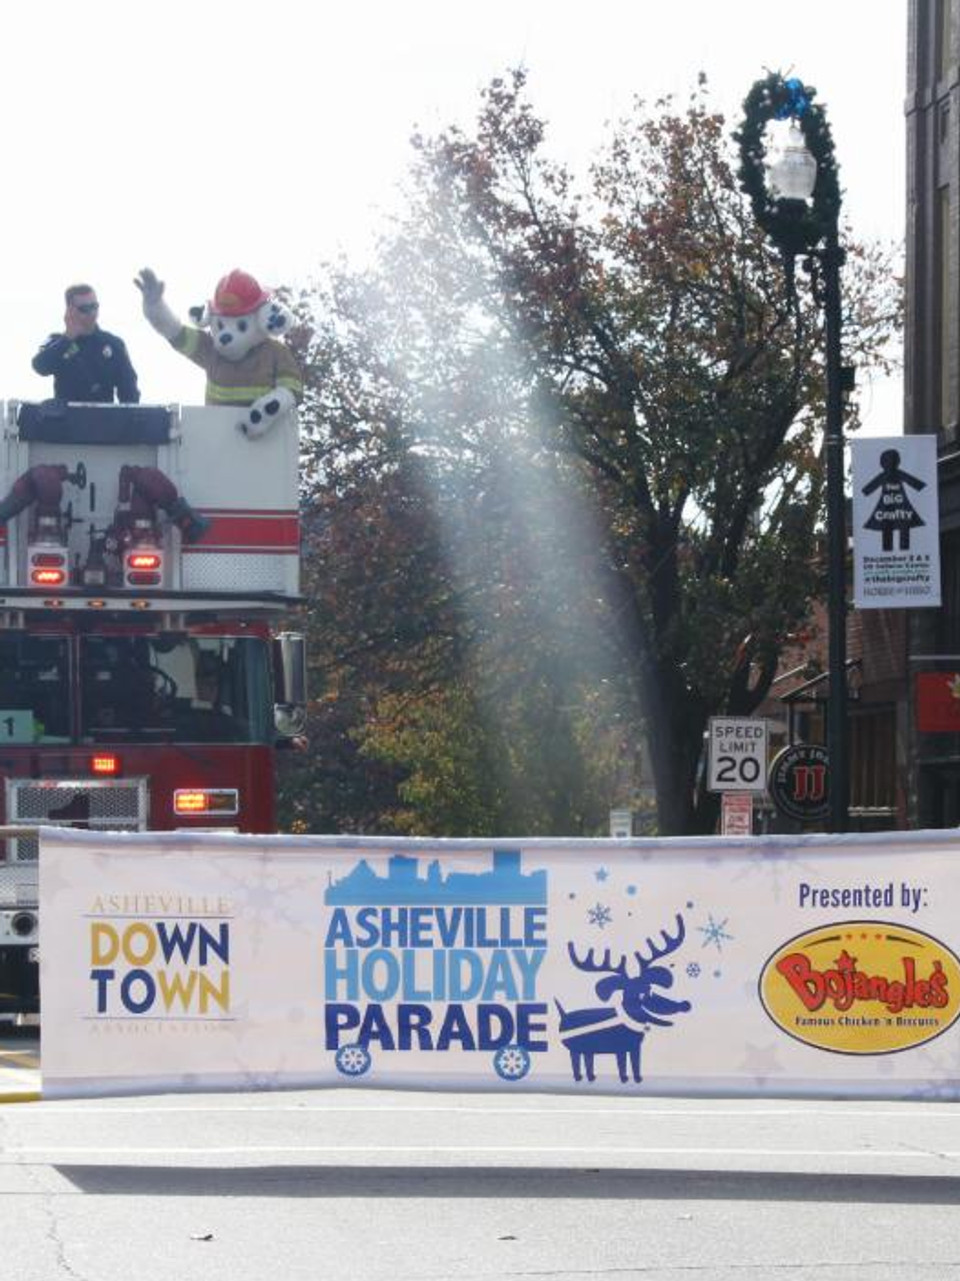 Asheville Nc Christmas Parade 2020 2020 Asheville Holiday Parade canceled due to COVID 19 | WLOS